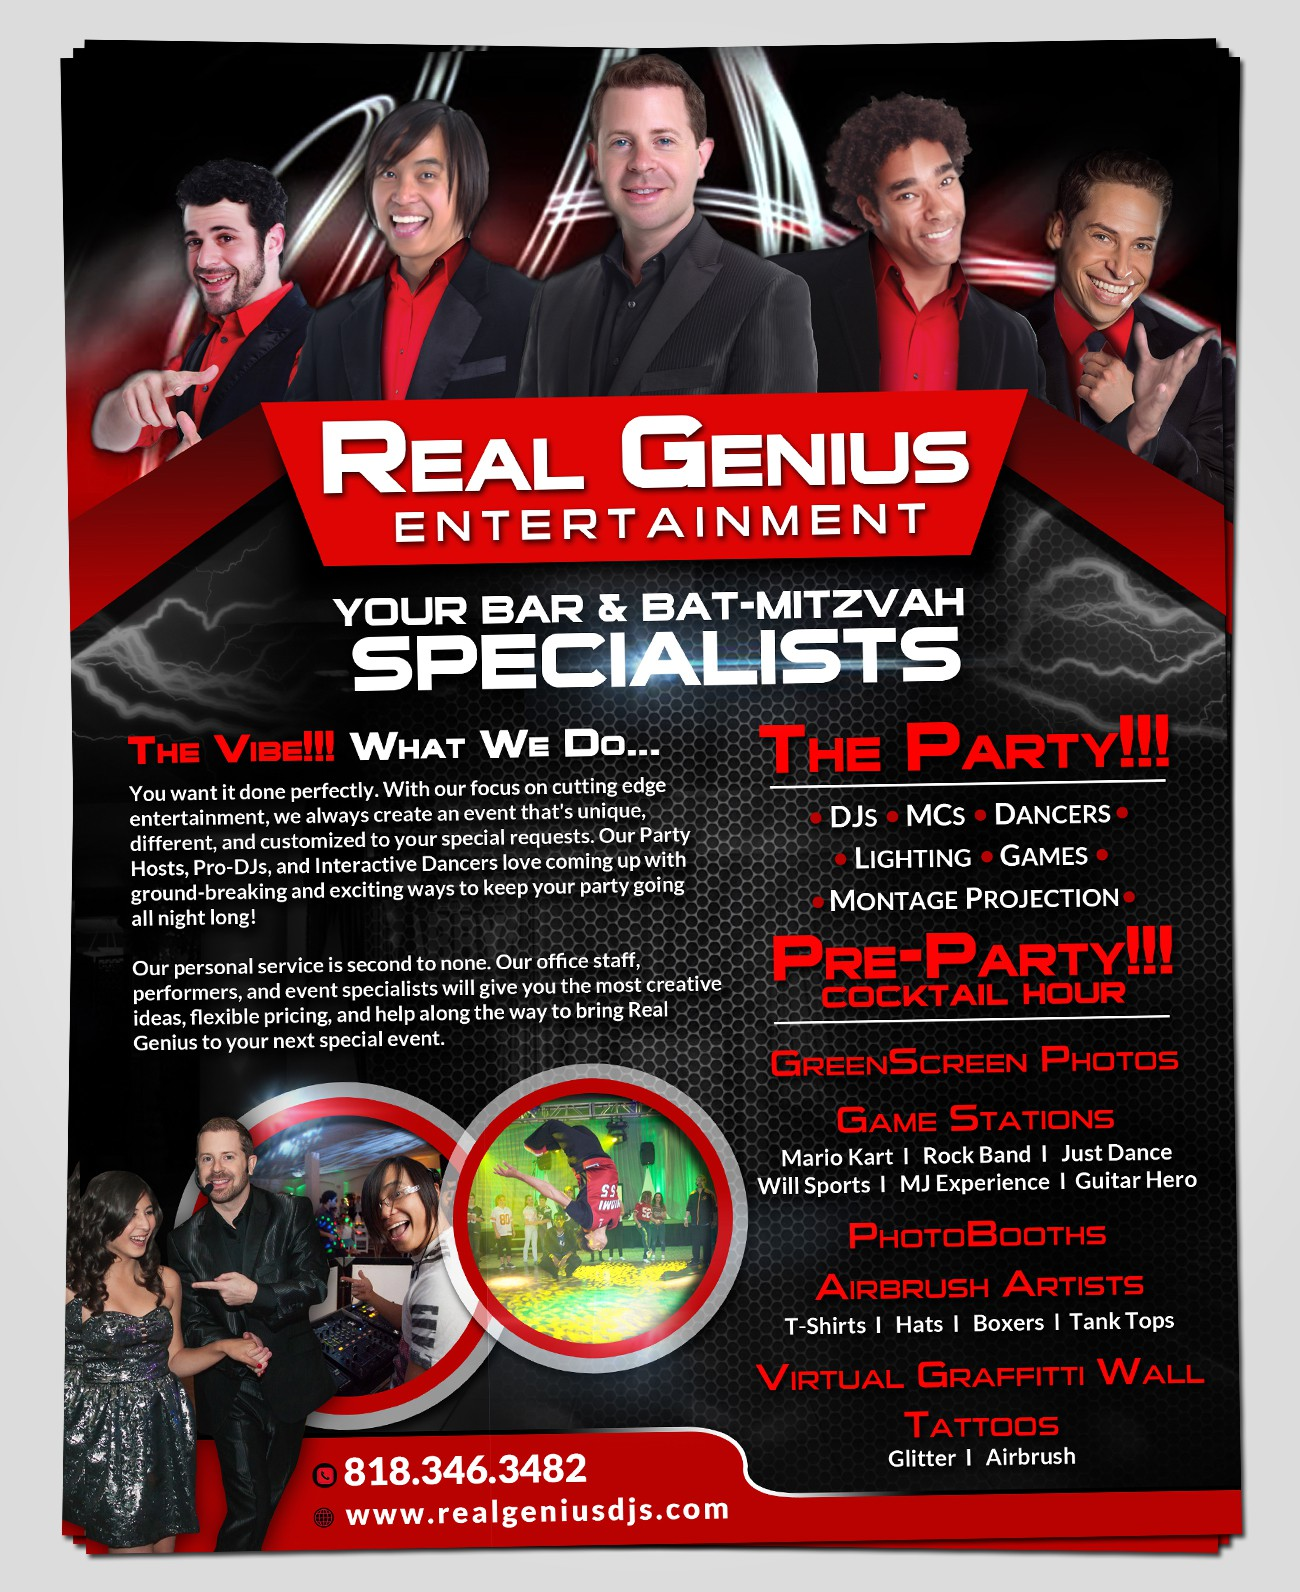 Real Genius DJs needs NEW FUN CREATIVE remix of an old flyer into a NEW AMAZING ONE!